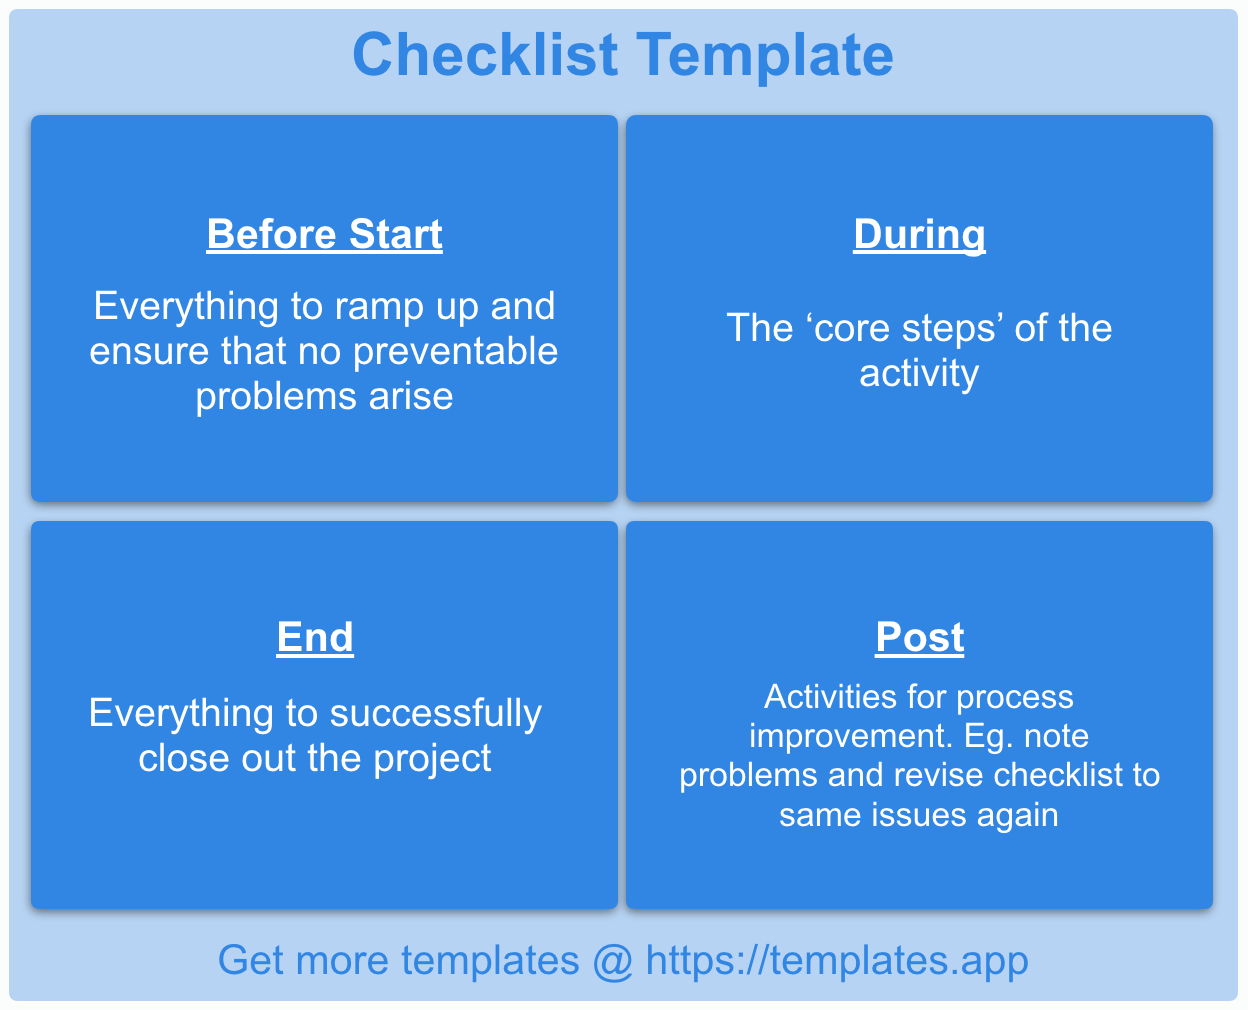 Checklist Template by Templates.app